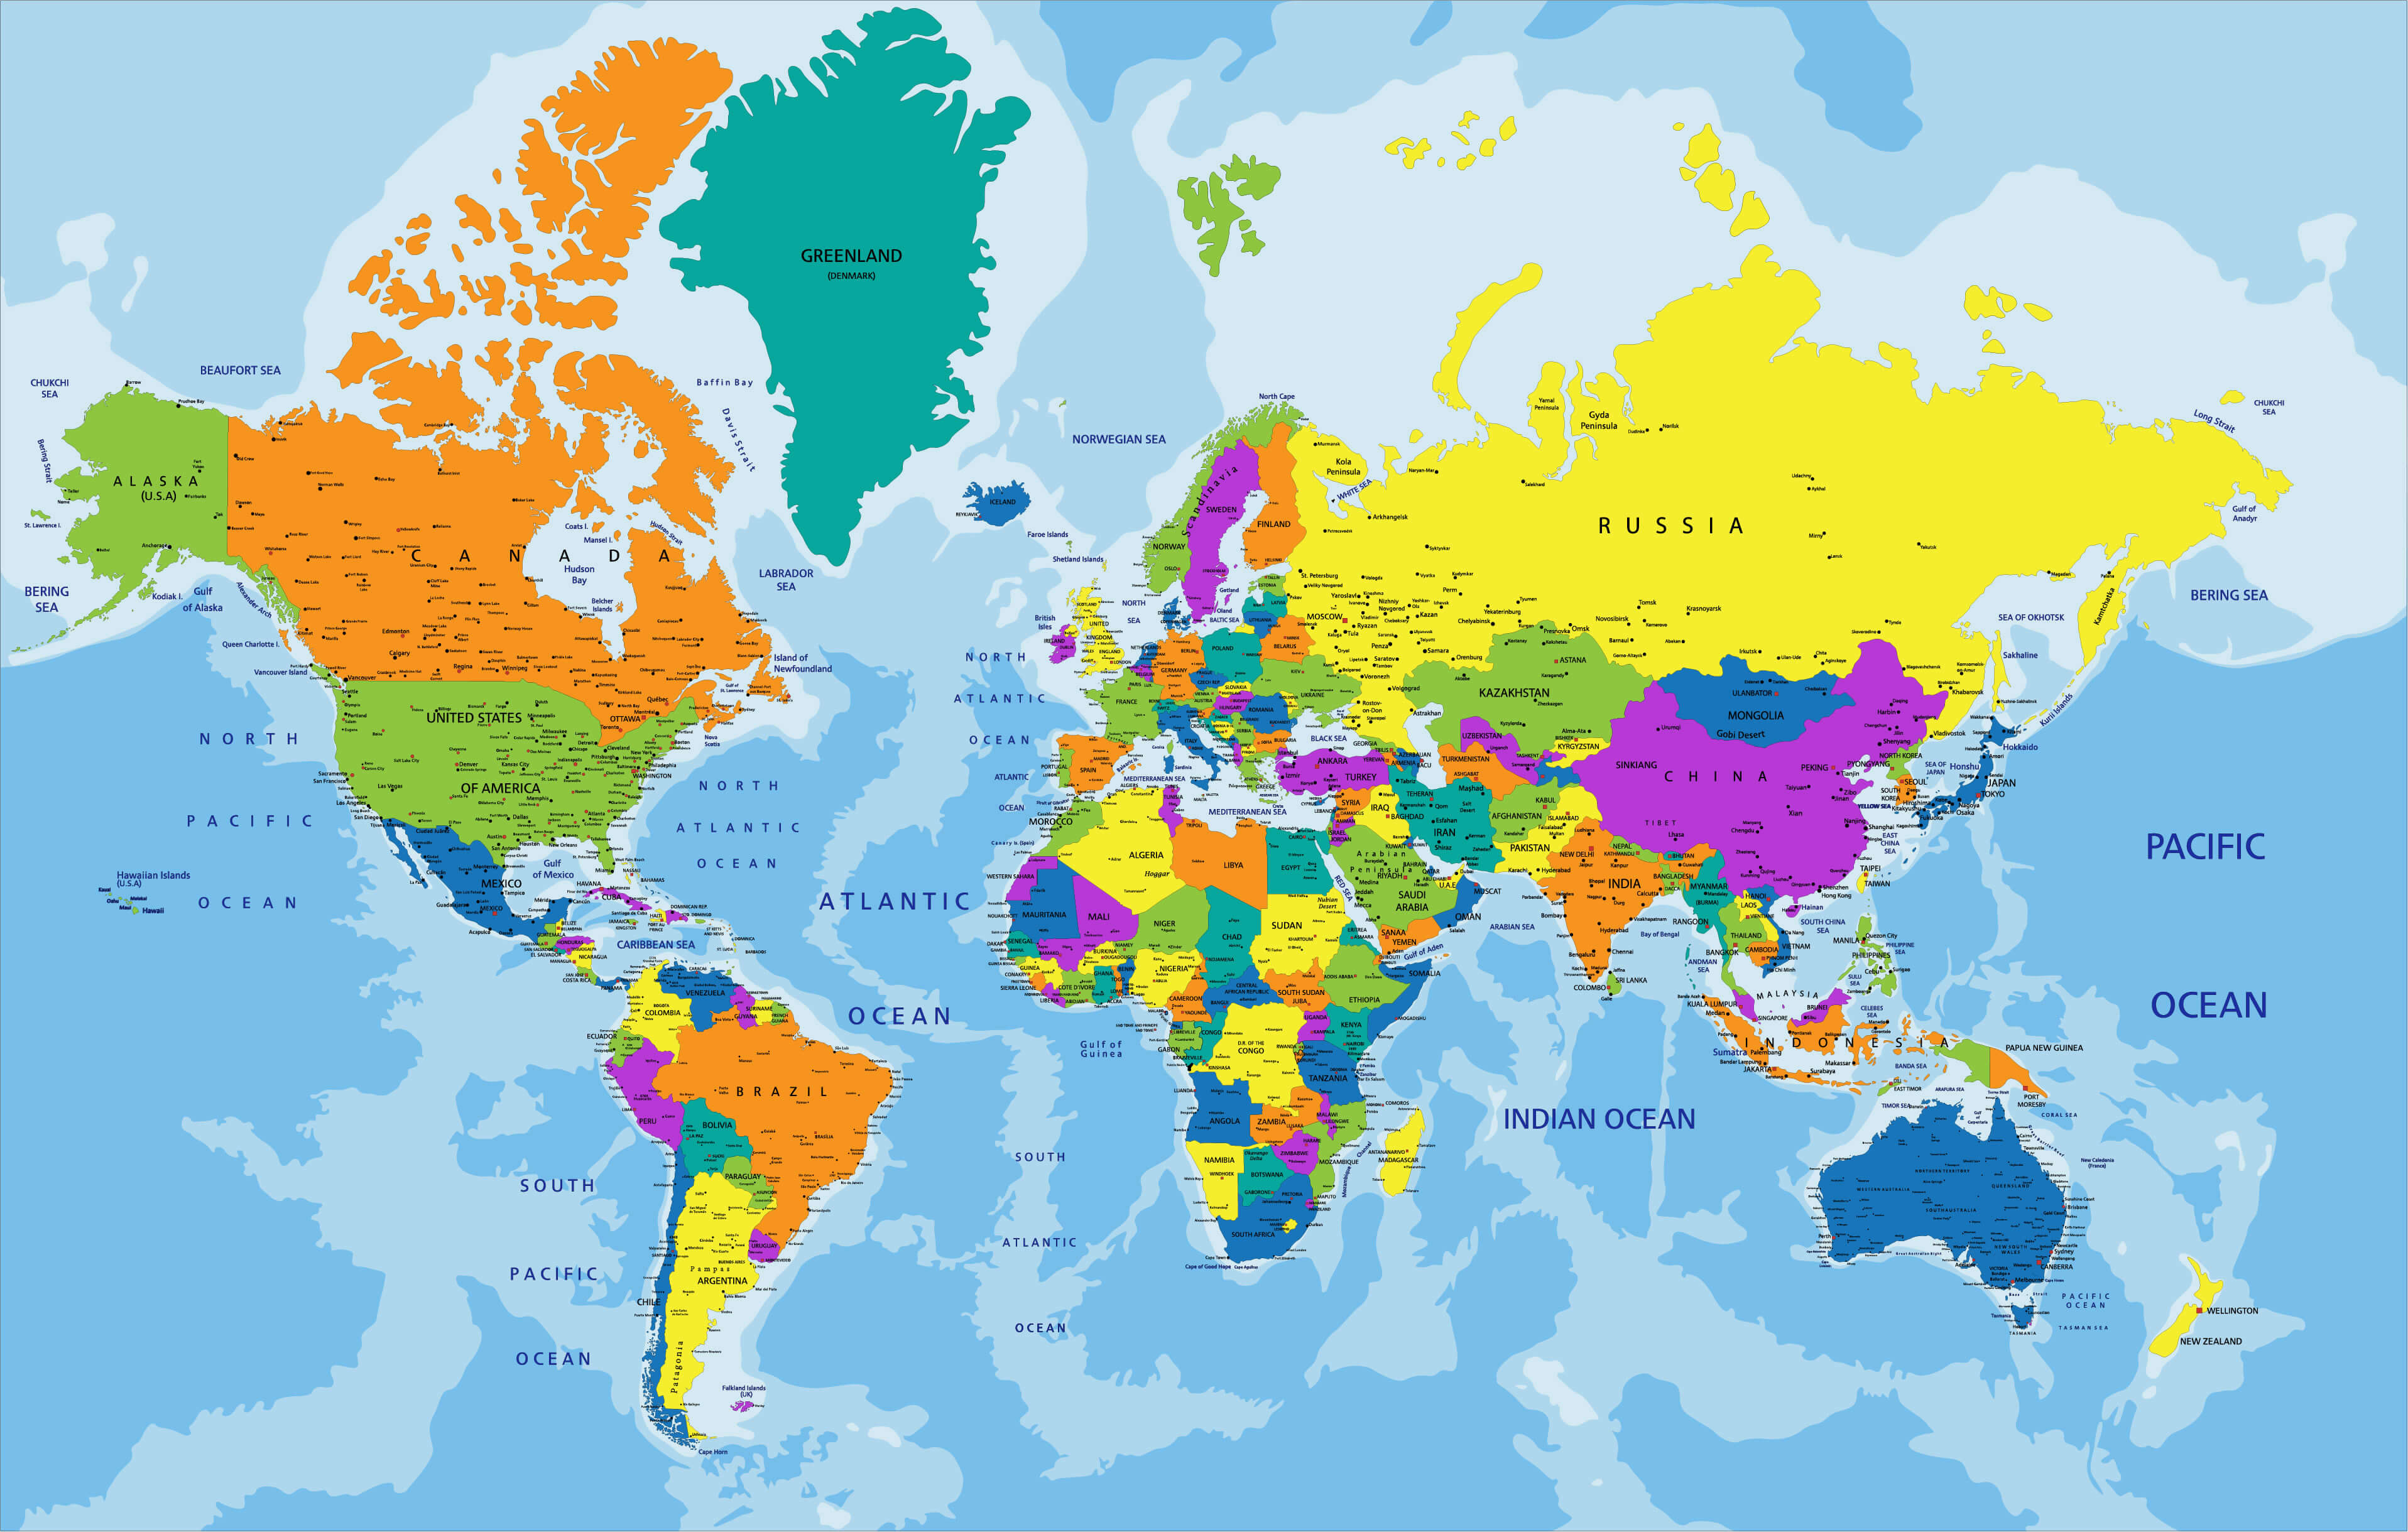 World Countries Map and Oceania